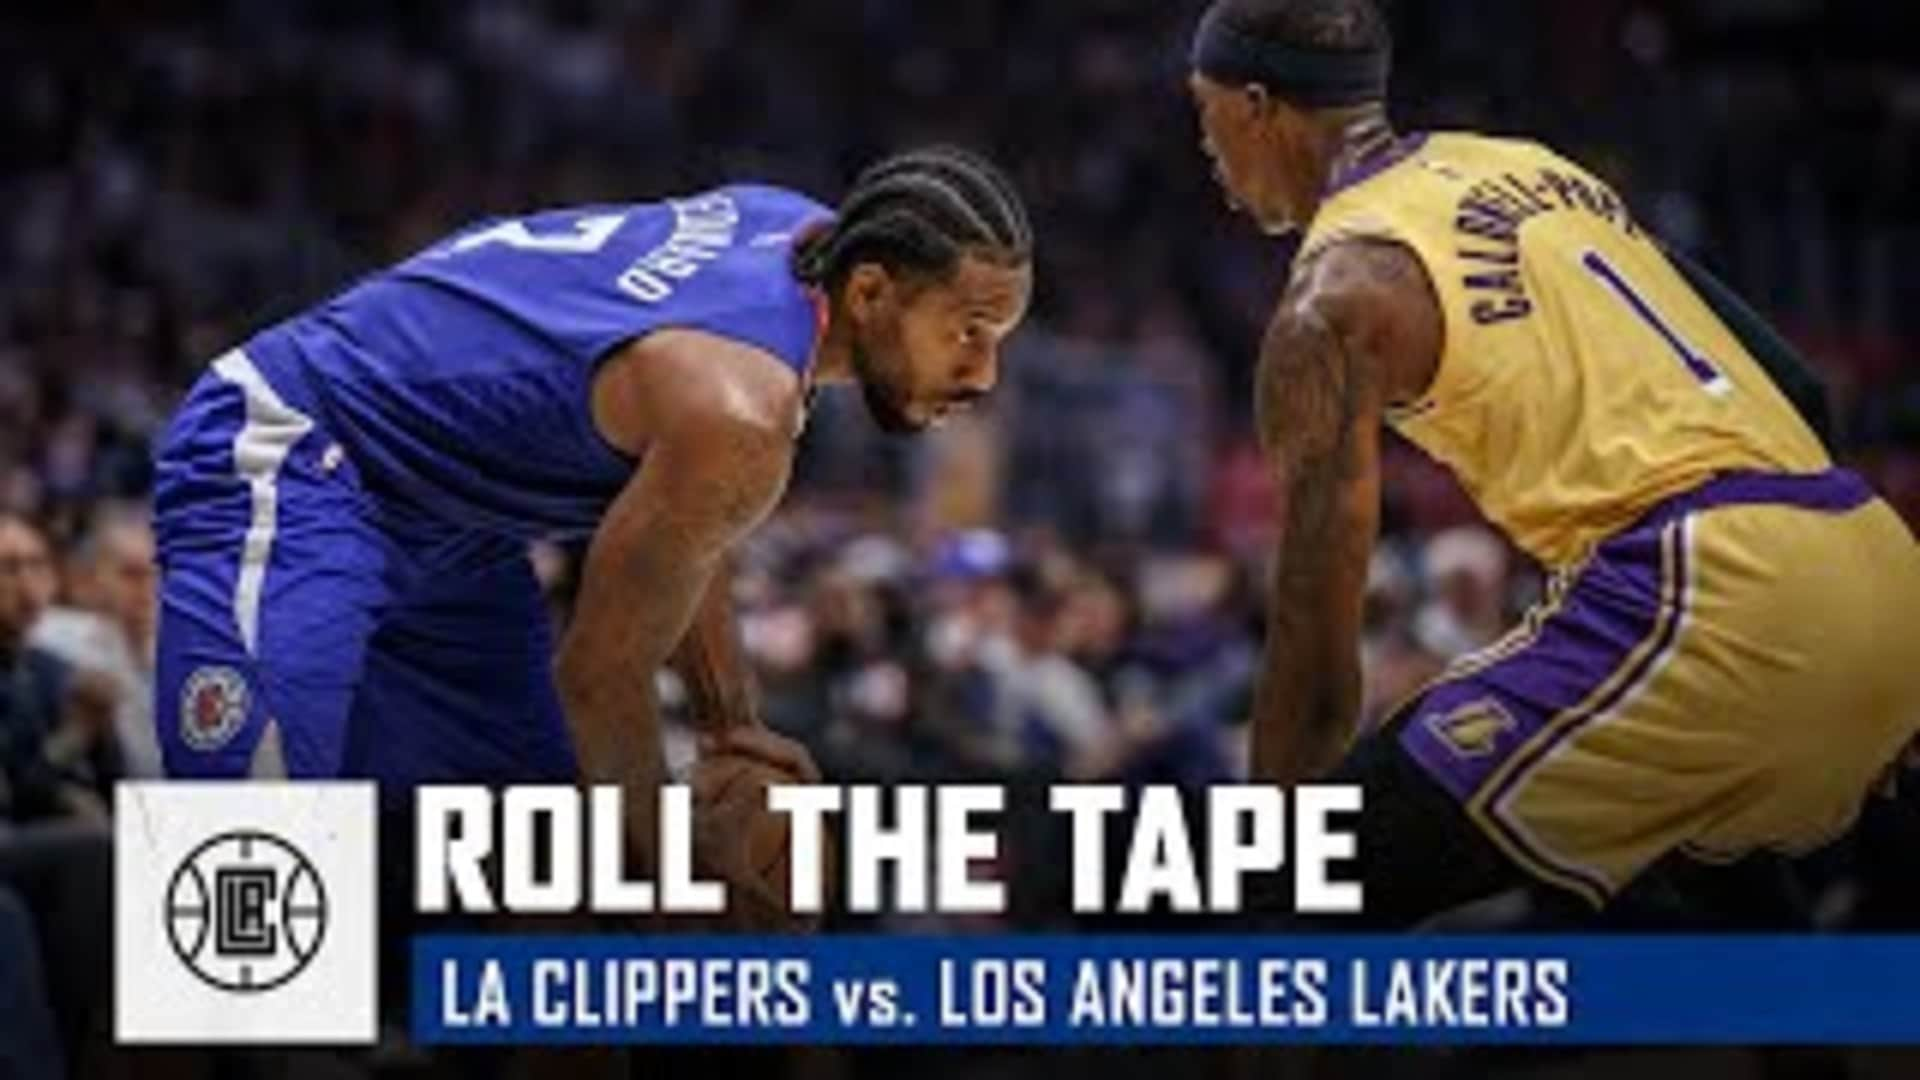 Clippers Open the 2019-20 Season with a W | Roll the Tape